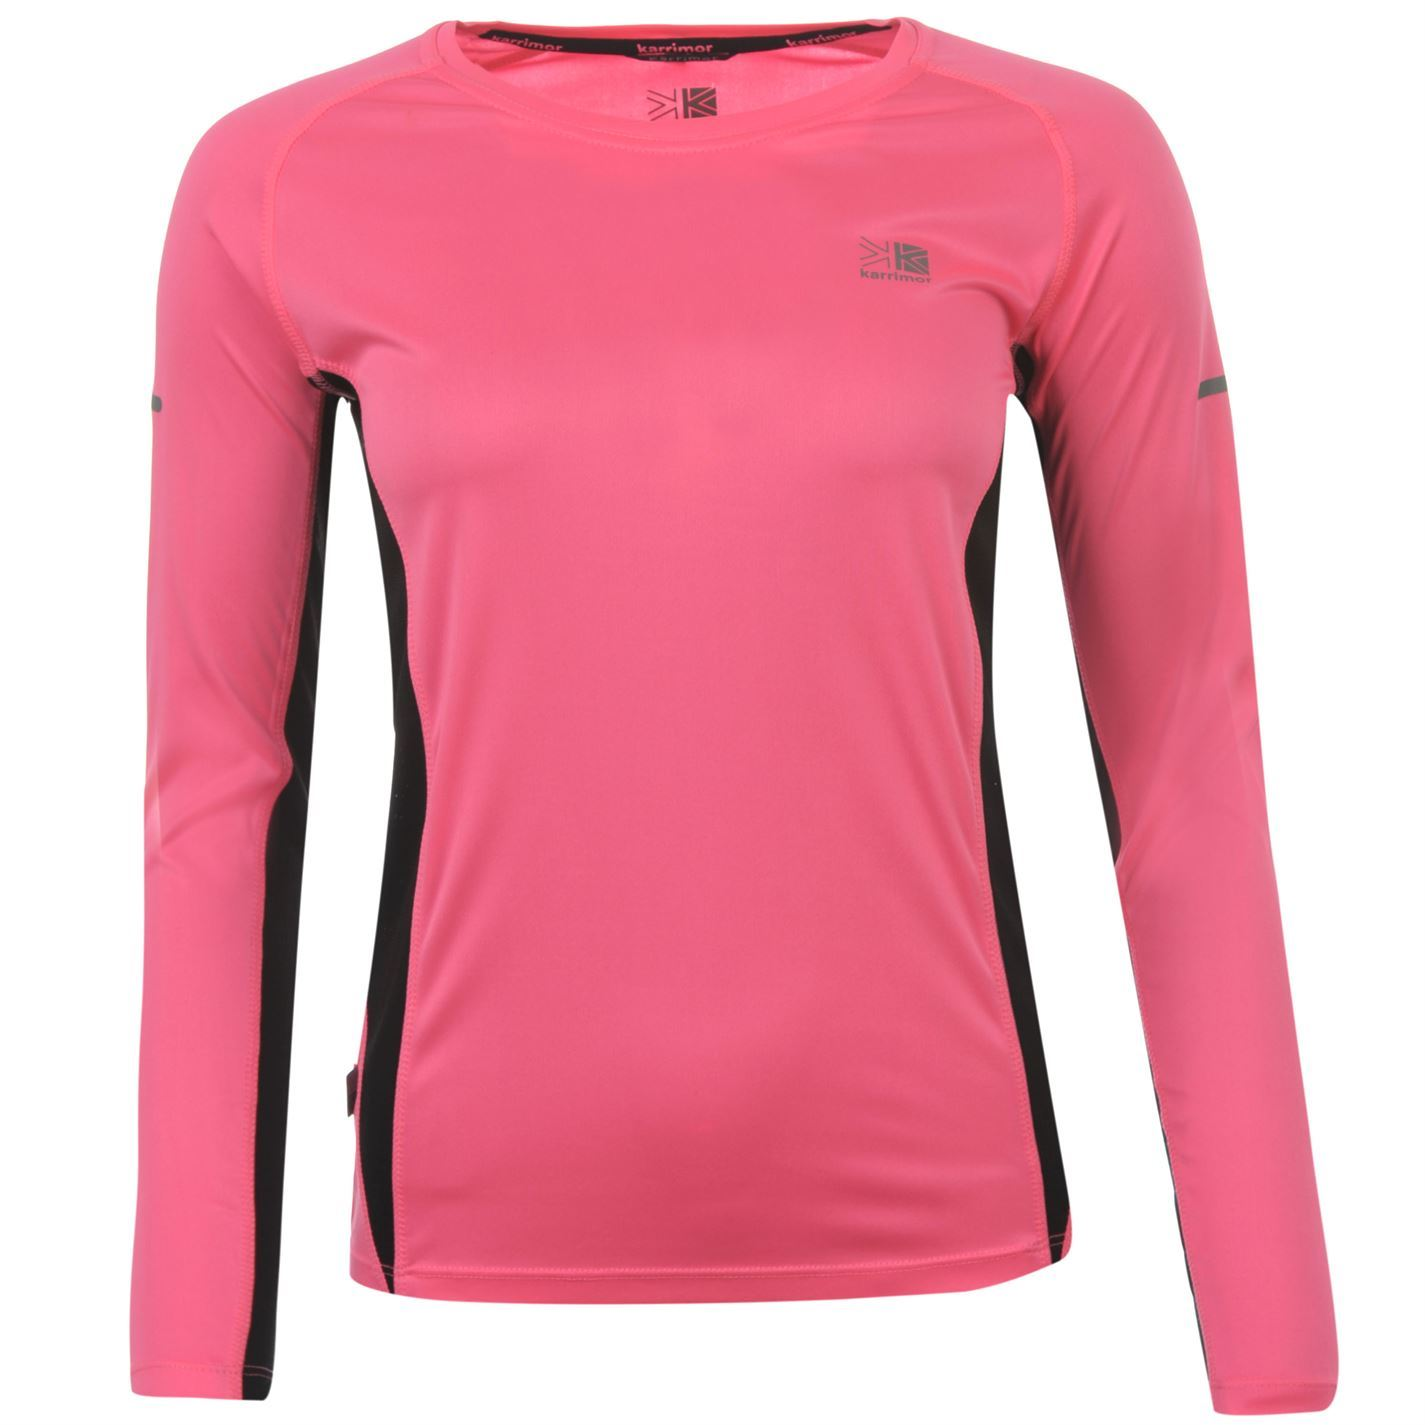 Karrimor womens ladies clothing long sleeve running for Women s running shirts